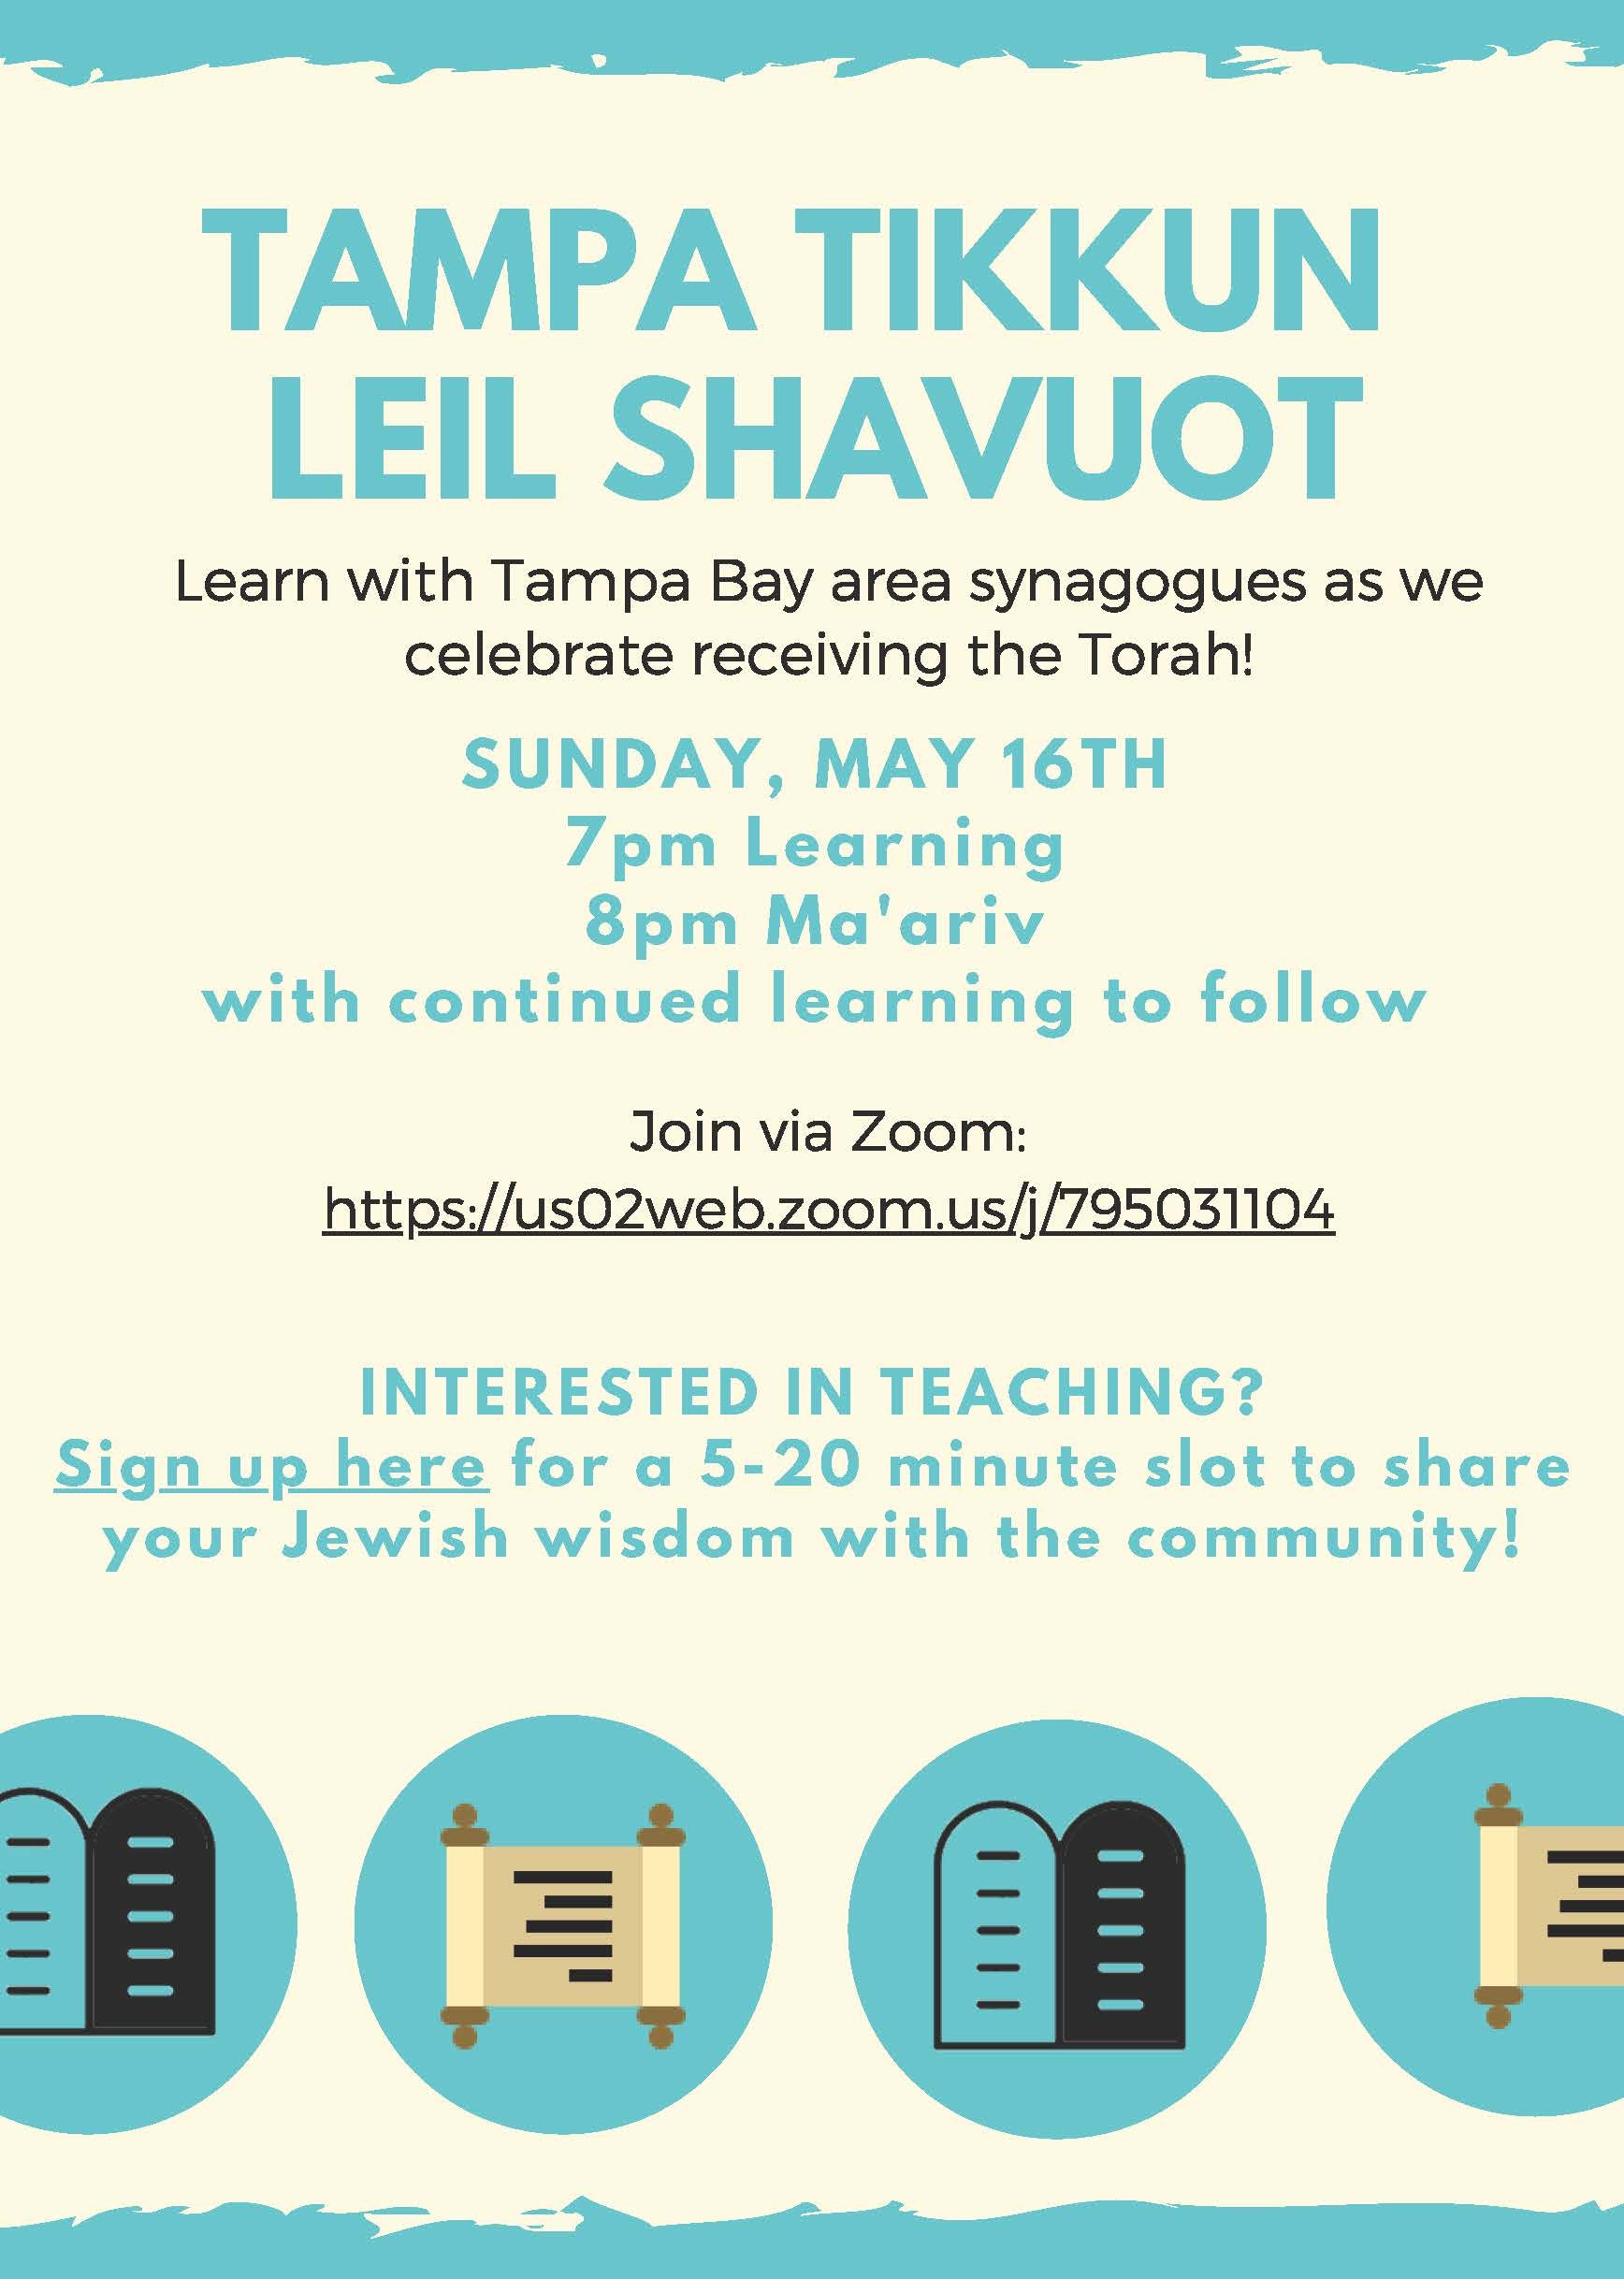 Banner Image for Virtual Tampa Tikkun Leil Shavuot :Learning and Ma'ariv Service